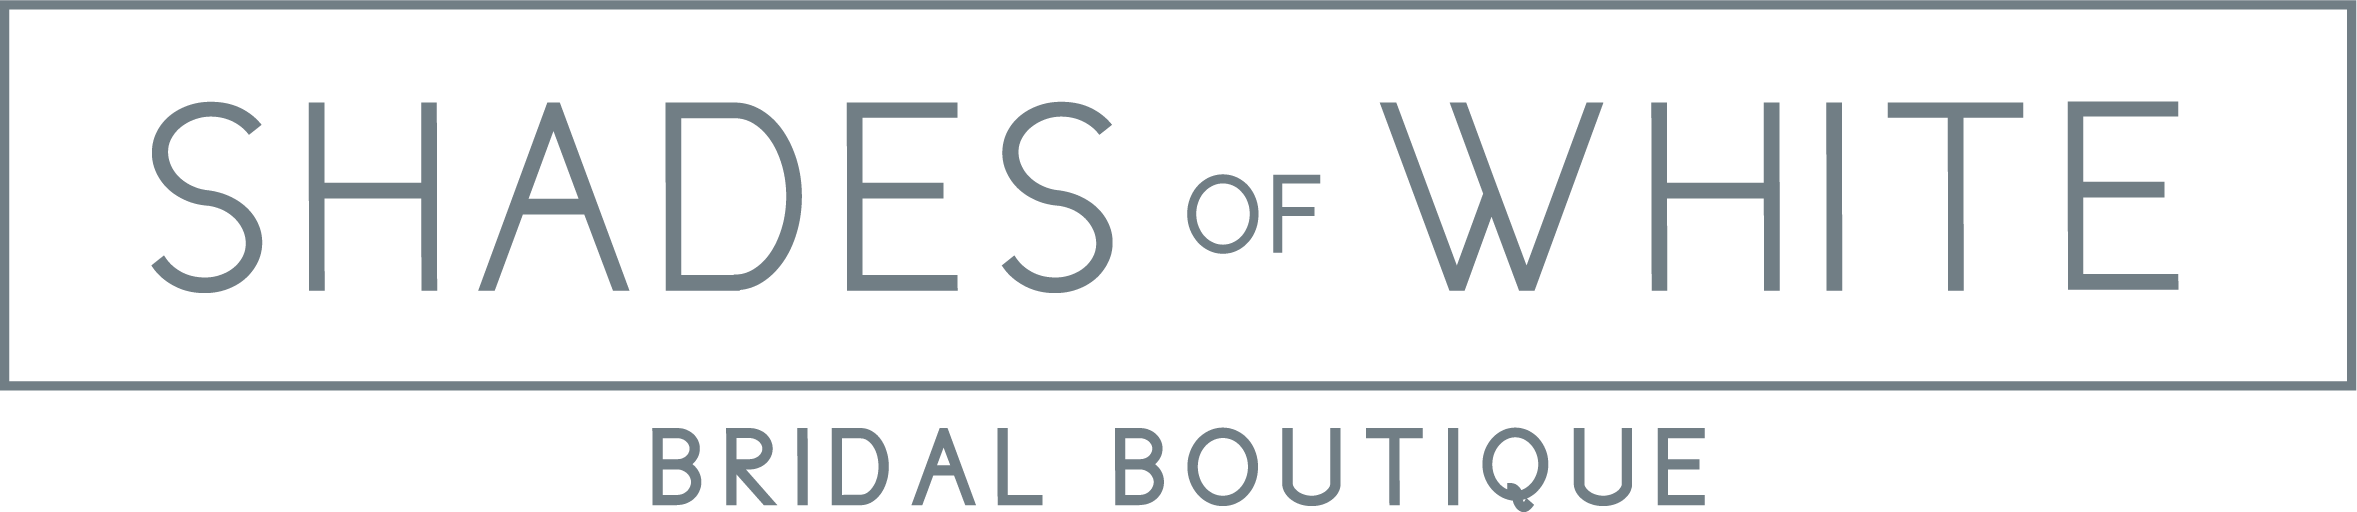 Shades of White Logo